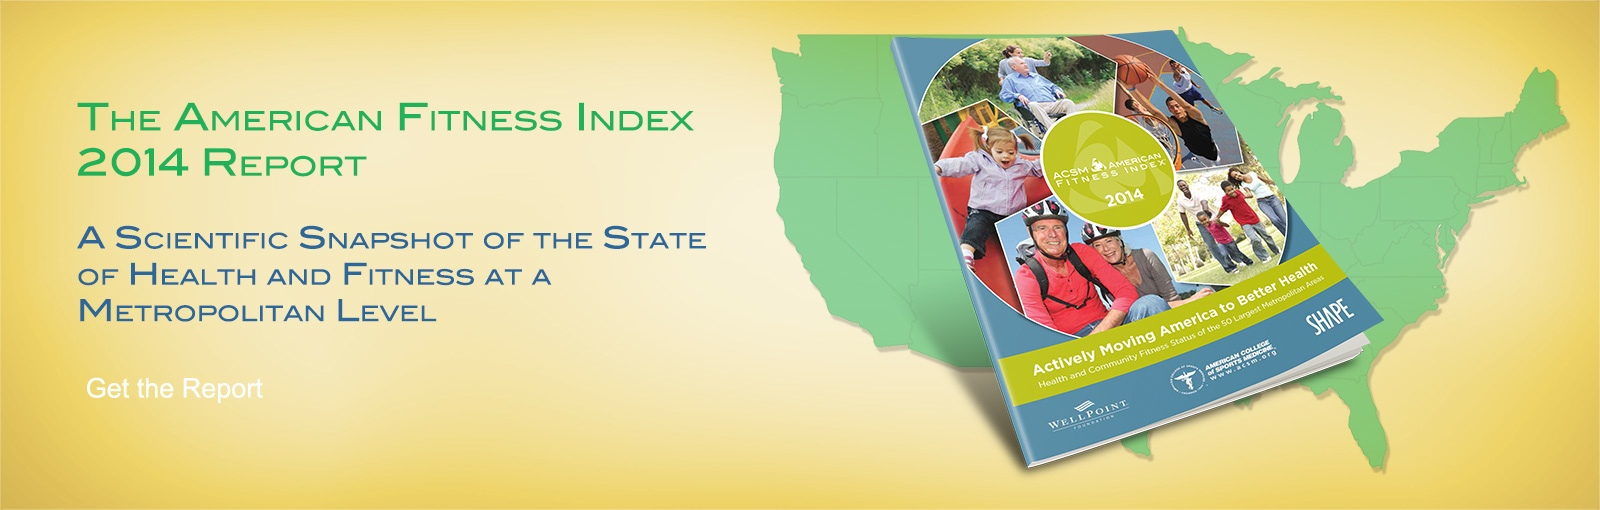 American Fitness Index 2014 Report